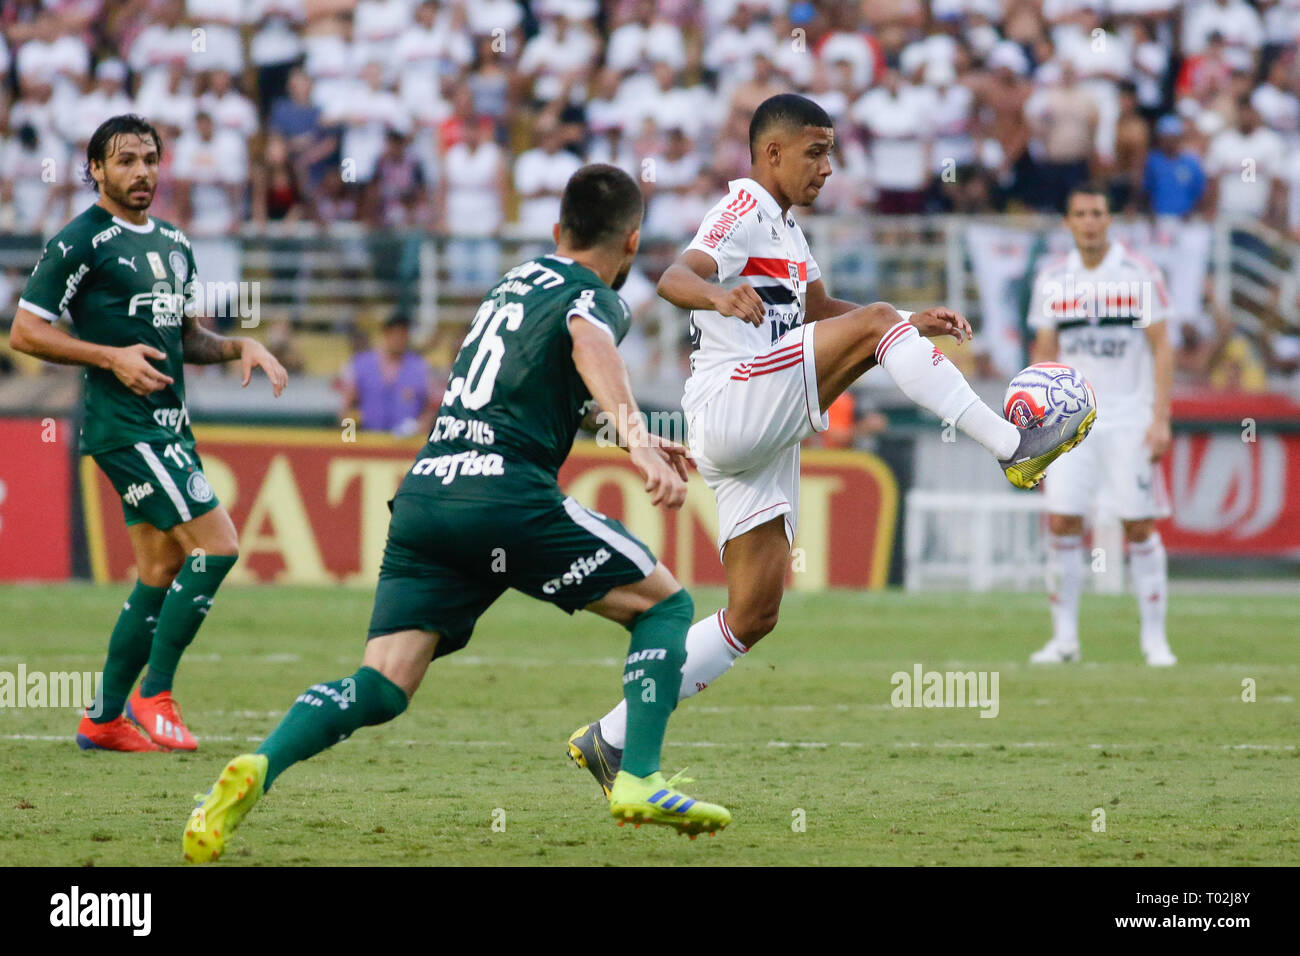 SP - Sao Paulo - 03/16/2019 - Paulista 2019, Sao Paulo vs. Palmeiras - Brenner player from Sao Paulo during a match against Palmeiras at Pacaembu Stadium for the Paulista 2019 championship. Photo: Marcello Zambrana / AGIF - Stock Image